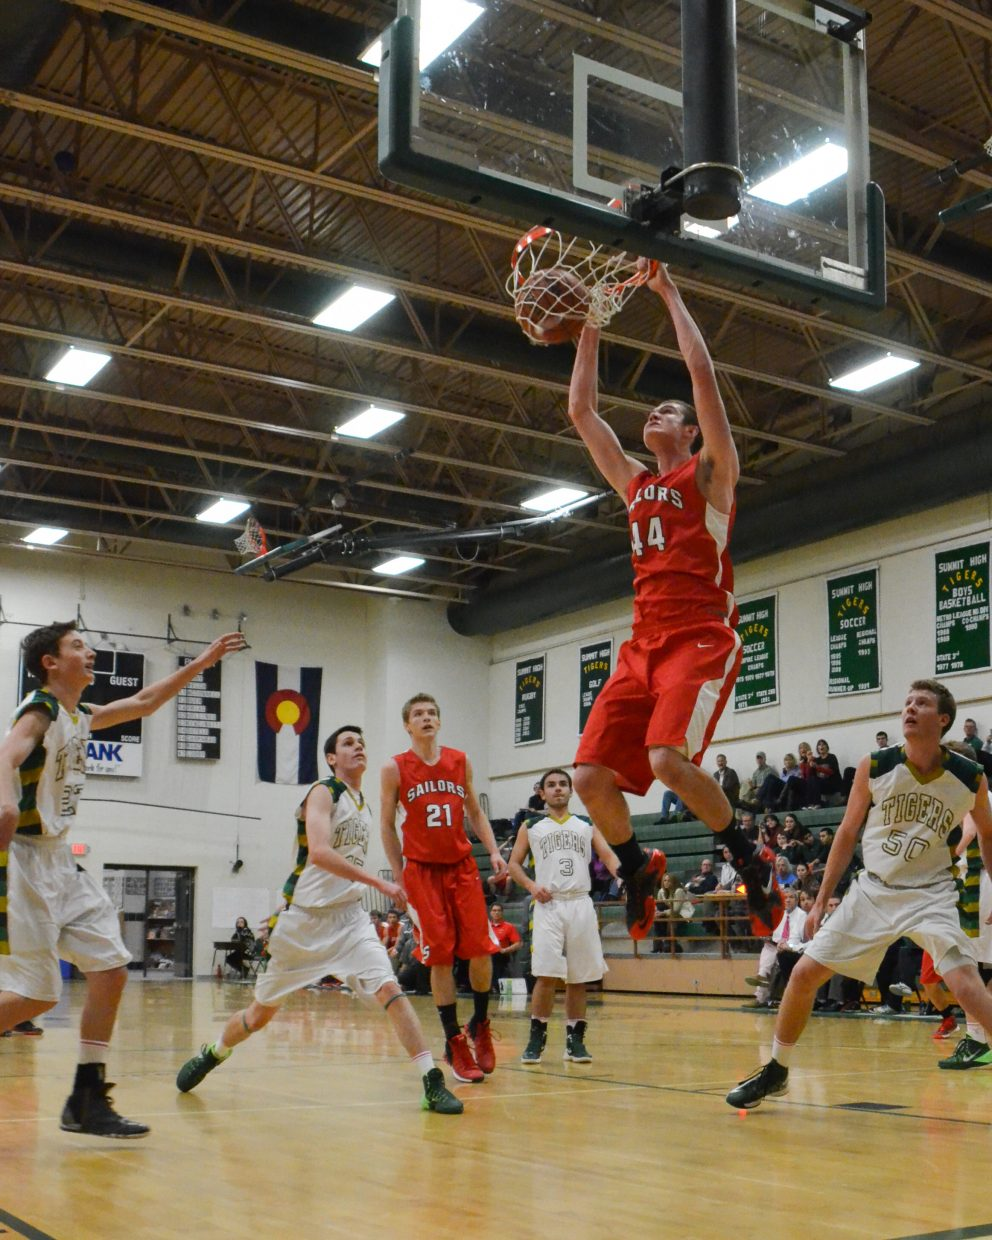 Garrett Bye slams down one of many dunks during Steamboat's 66-44 victory against Summit County.